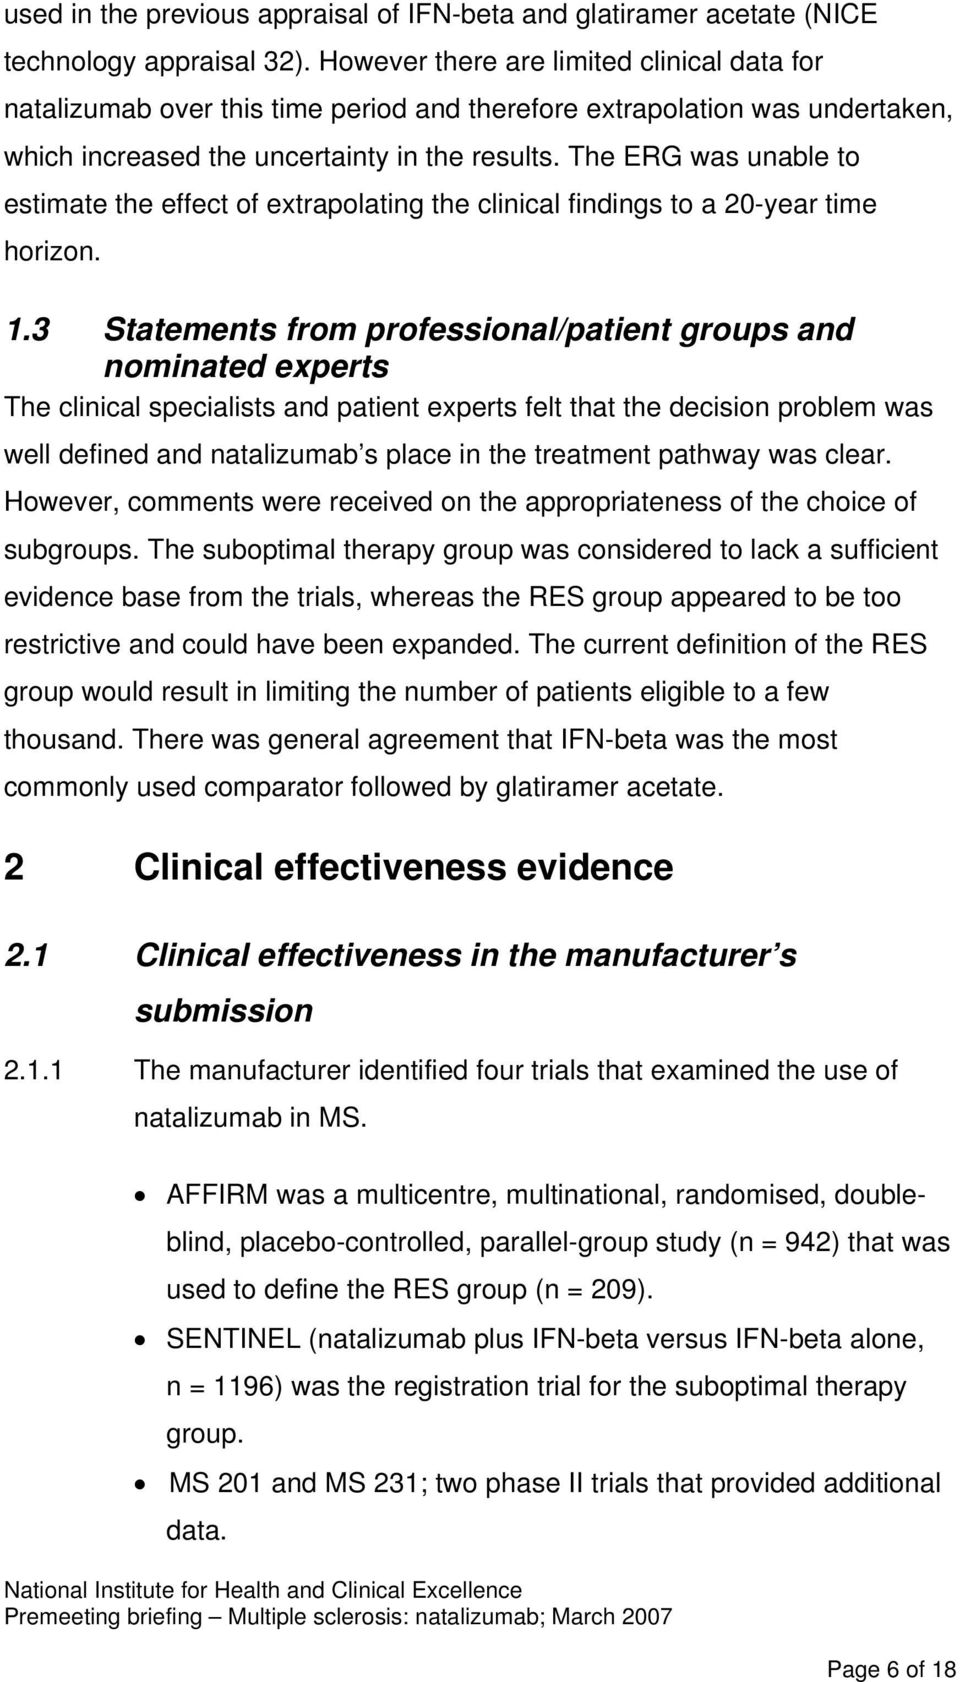 The ERG was unable to estimate the effect of extrapolating the clinical findings to a 20-year time horizon. 1.